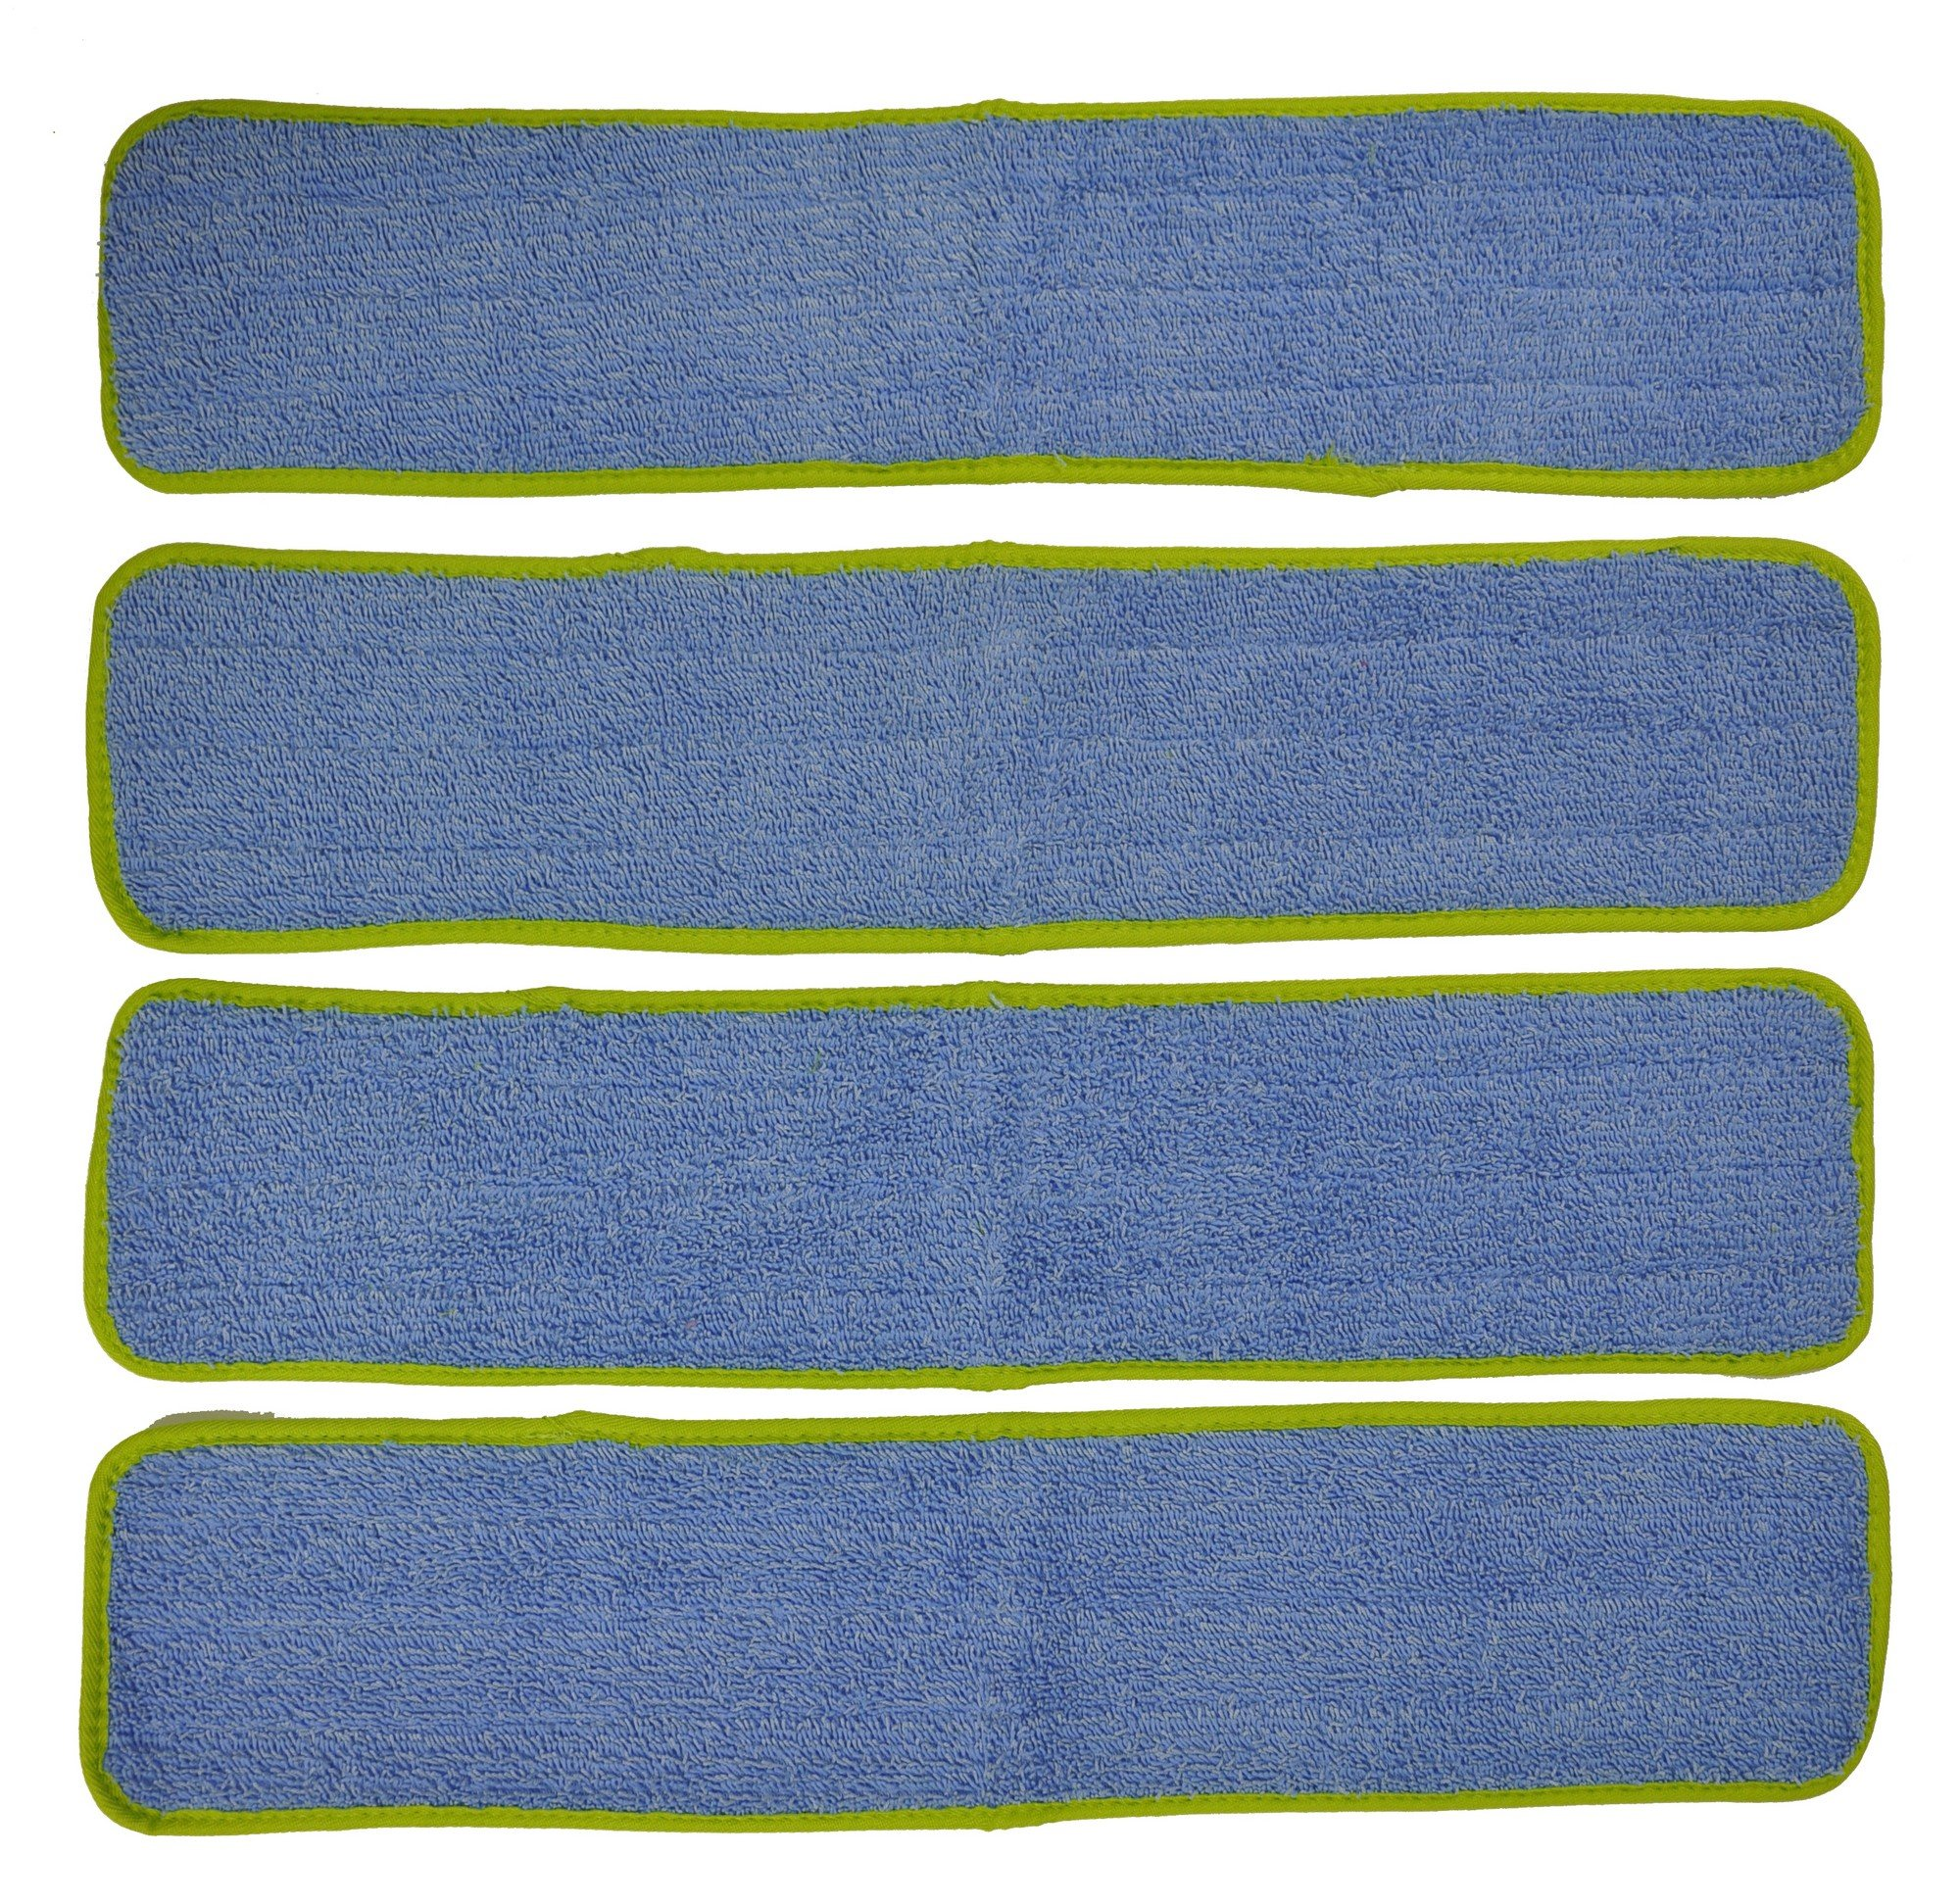 Eurow Commercial Microfiber Wet Mop Pad Refill 24 in Green 4 Pack